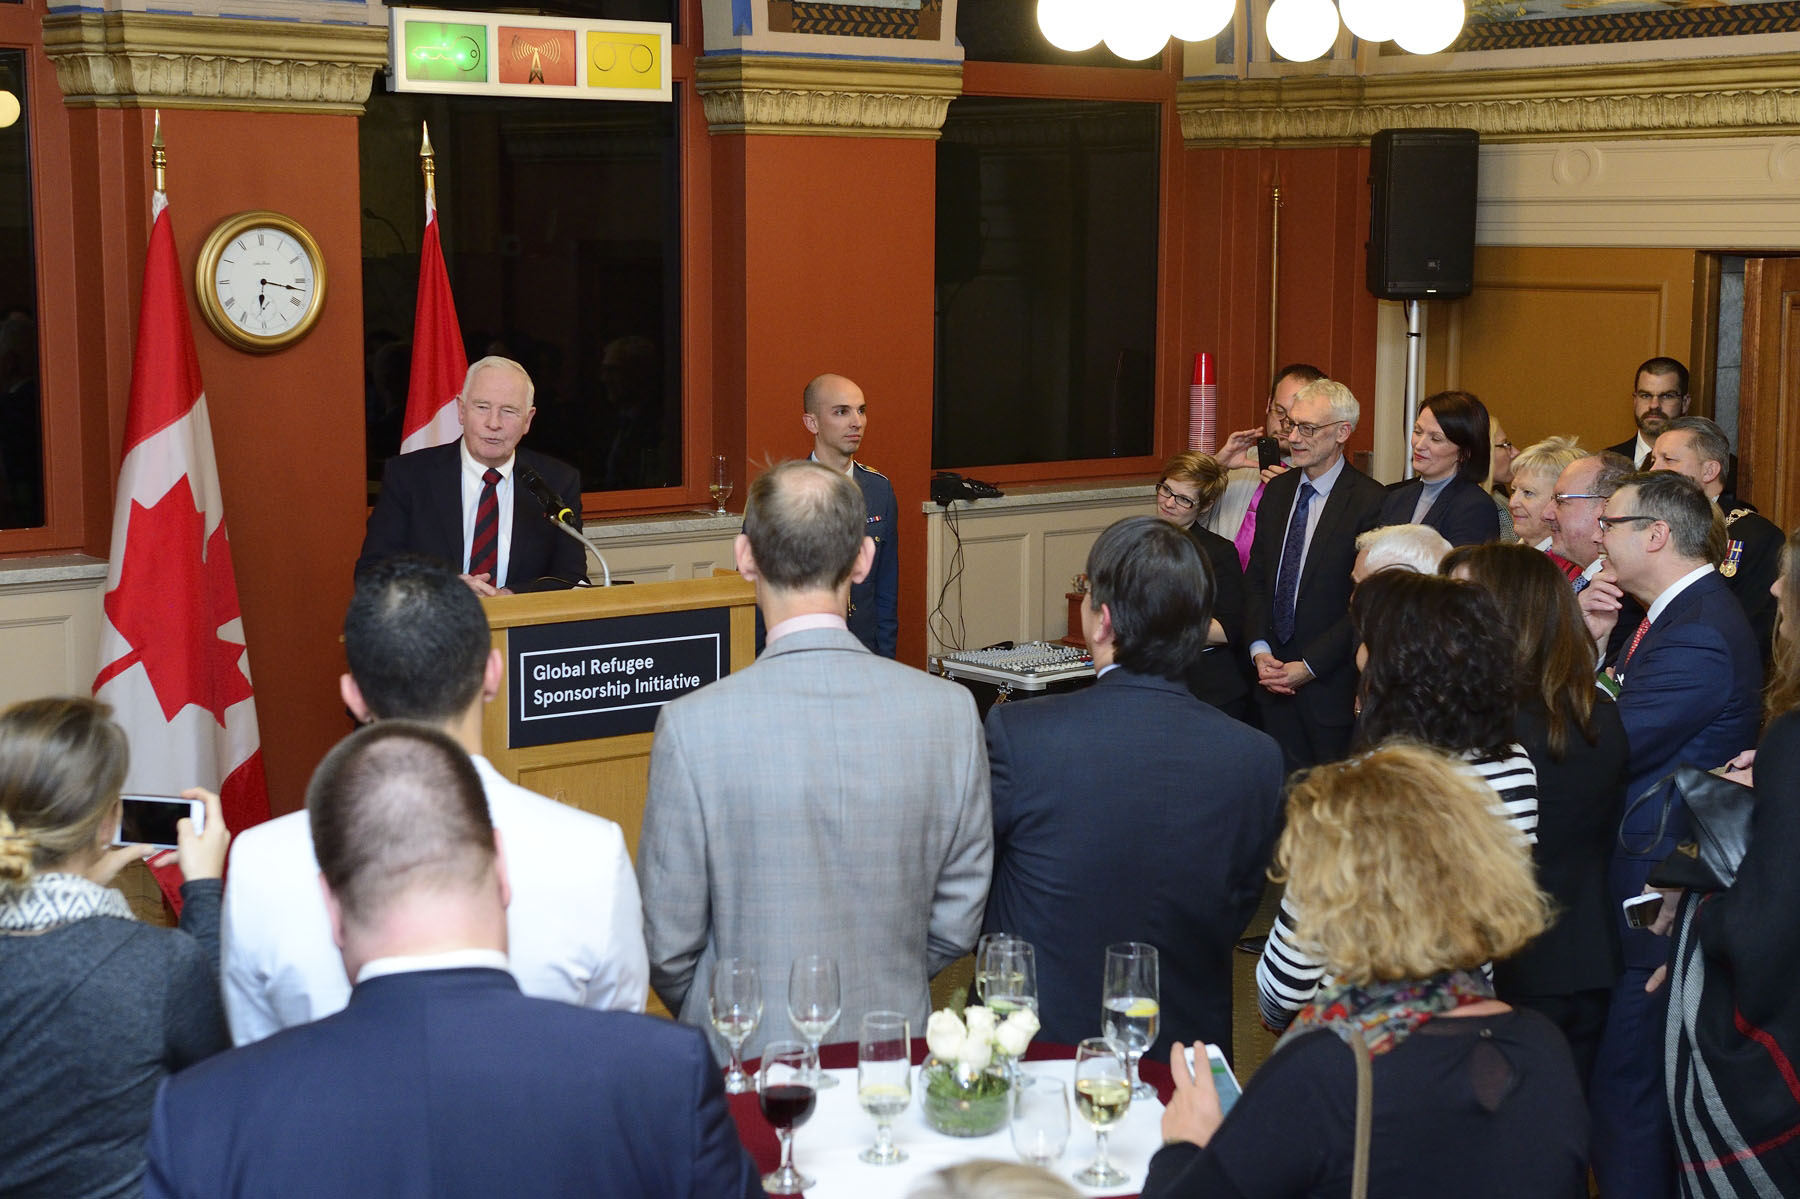 His Excellency the Right Honourable David Johnston, Governor General of Canada, addressed participants at the Global Refugee Sponsorship Initiative reception held on Parliament Hill on December 15, 2016.